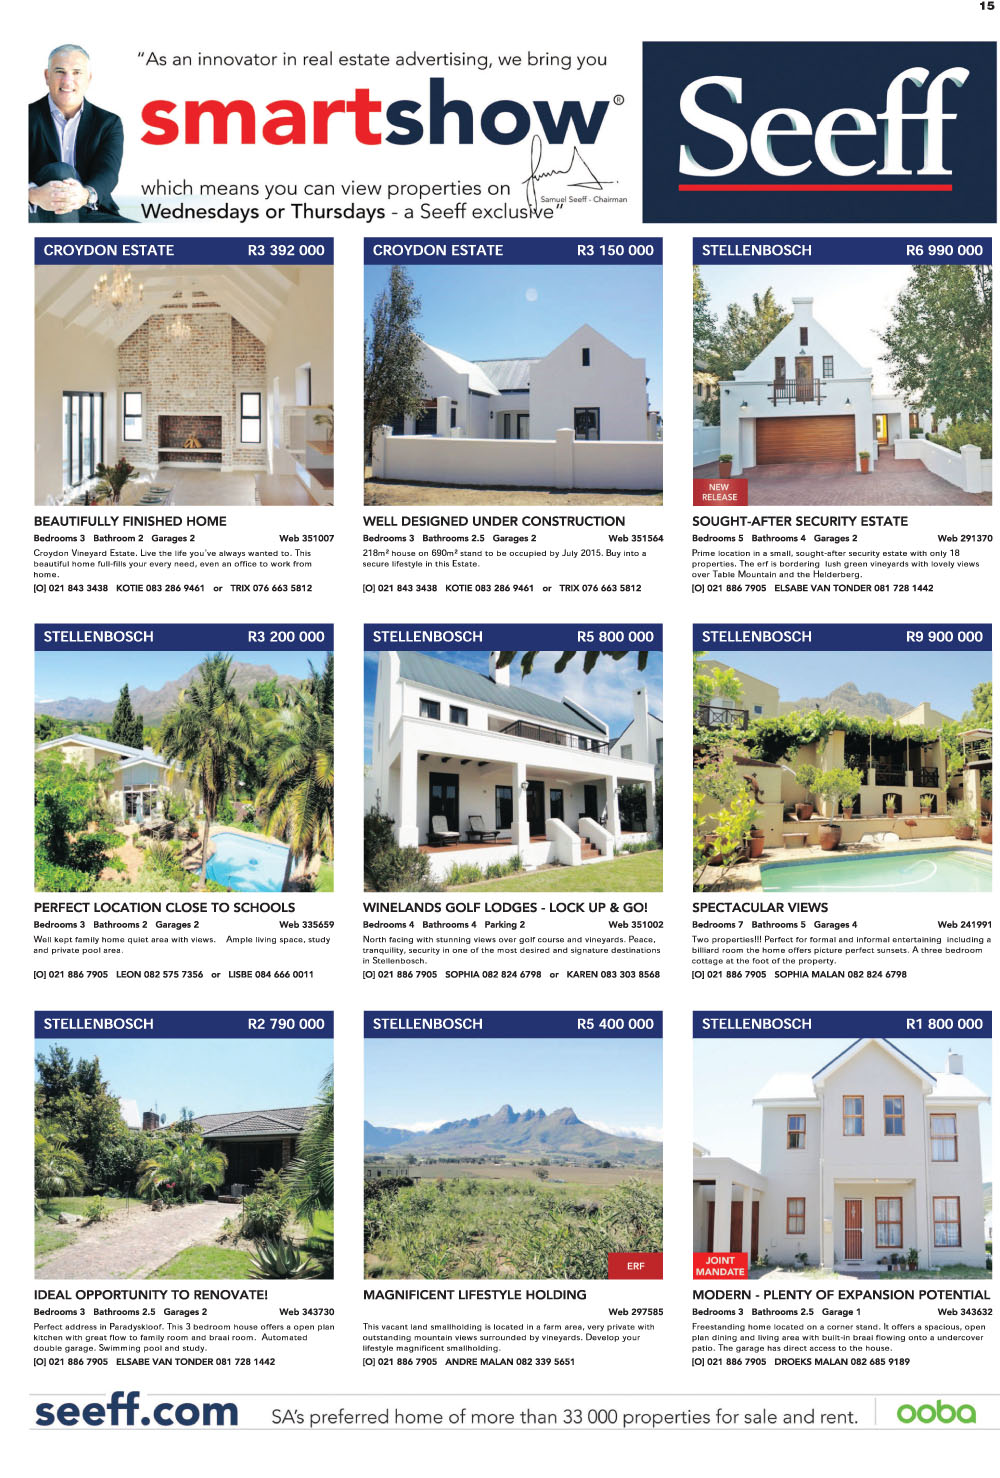 You are browsing images from the article: Property Selection May 06 2015